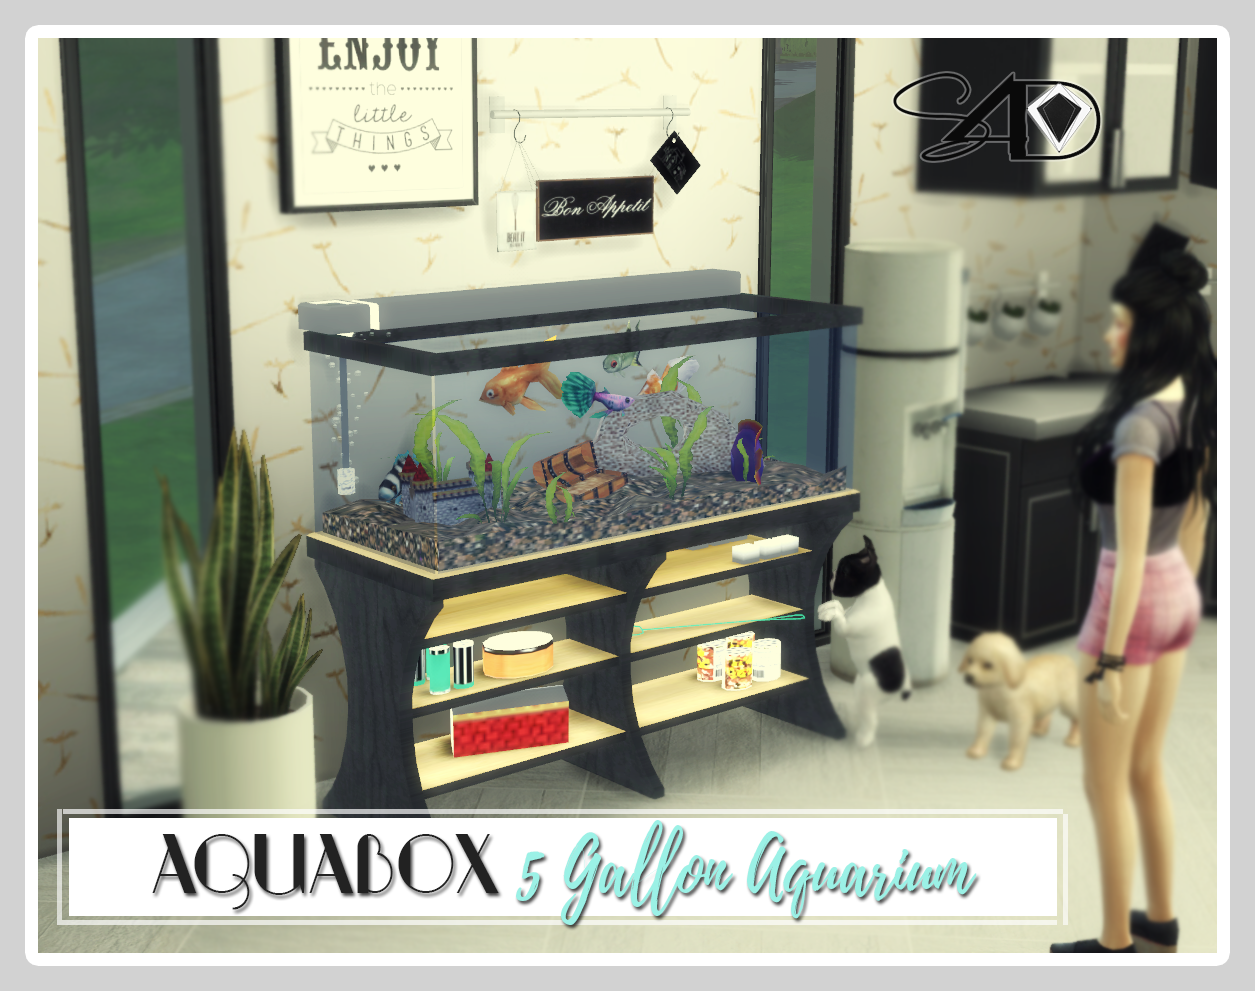 2T4 CONVERSION OF AQUABOX 5 GALLON AQUARIUM AT DAER0N  SIMS 4 DESIGNS